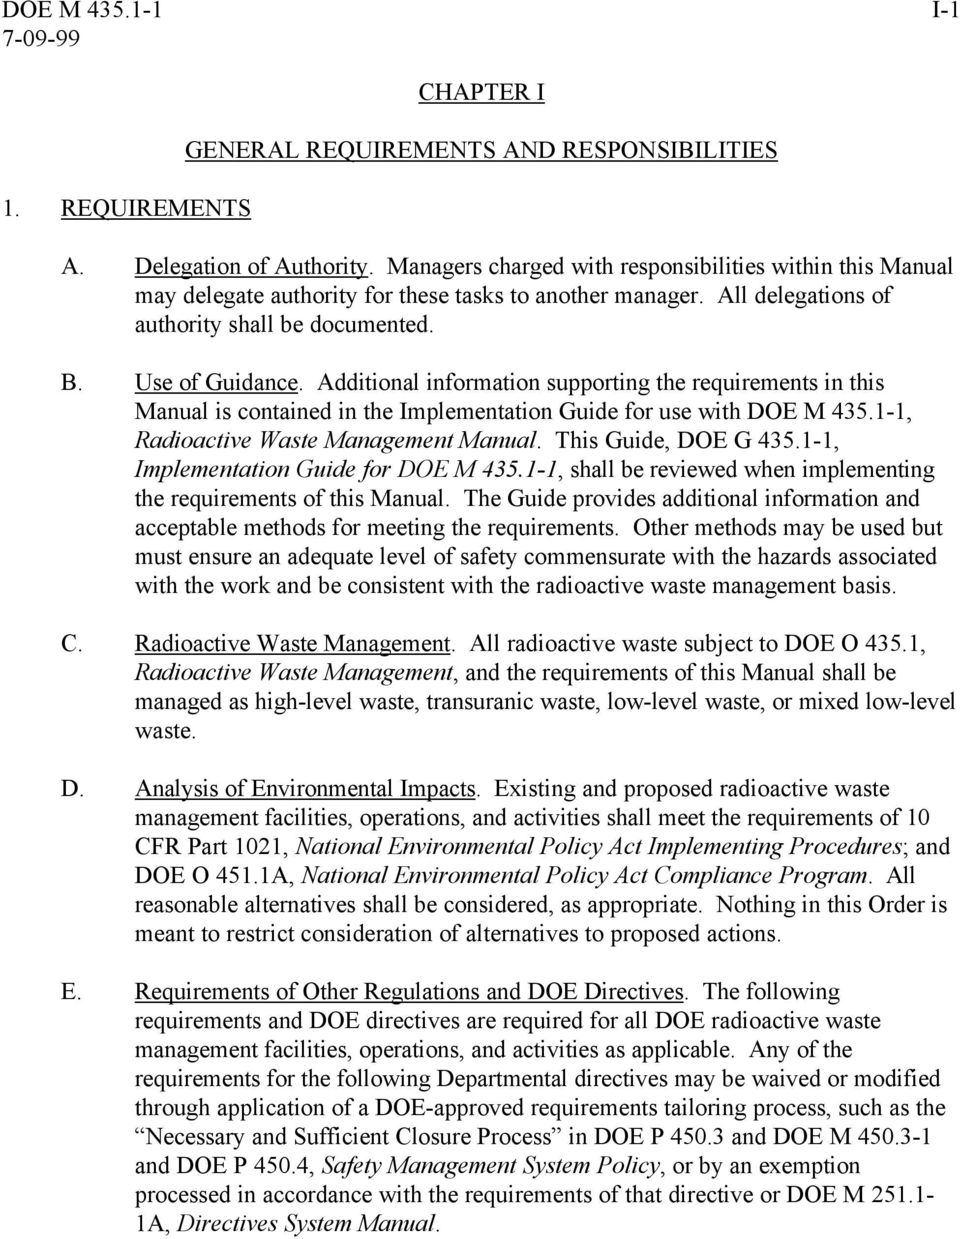 Additional information supporting the requirements in this Manual is contained in the Implementation Guide for use with DOE M 435.1-1, Radioactive Waste Management Manual. This Guide, DOE G 435.